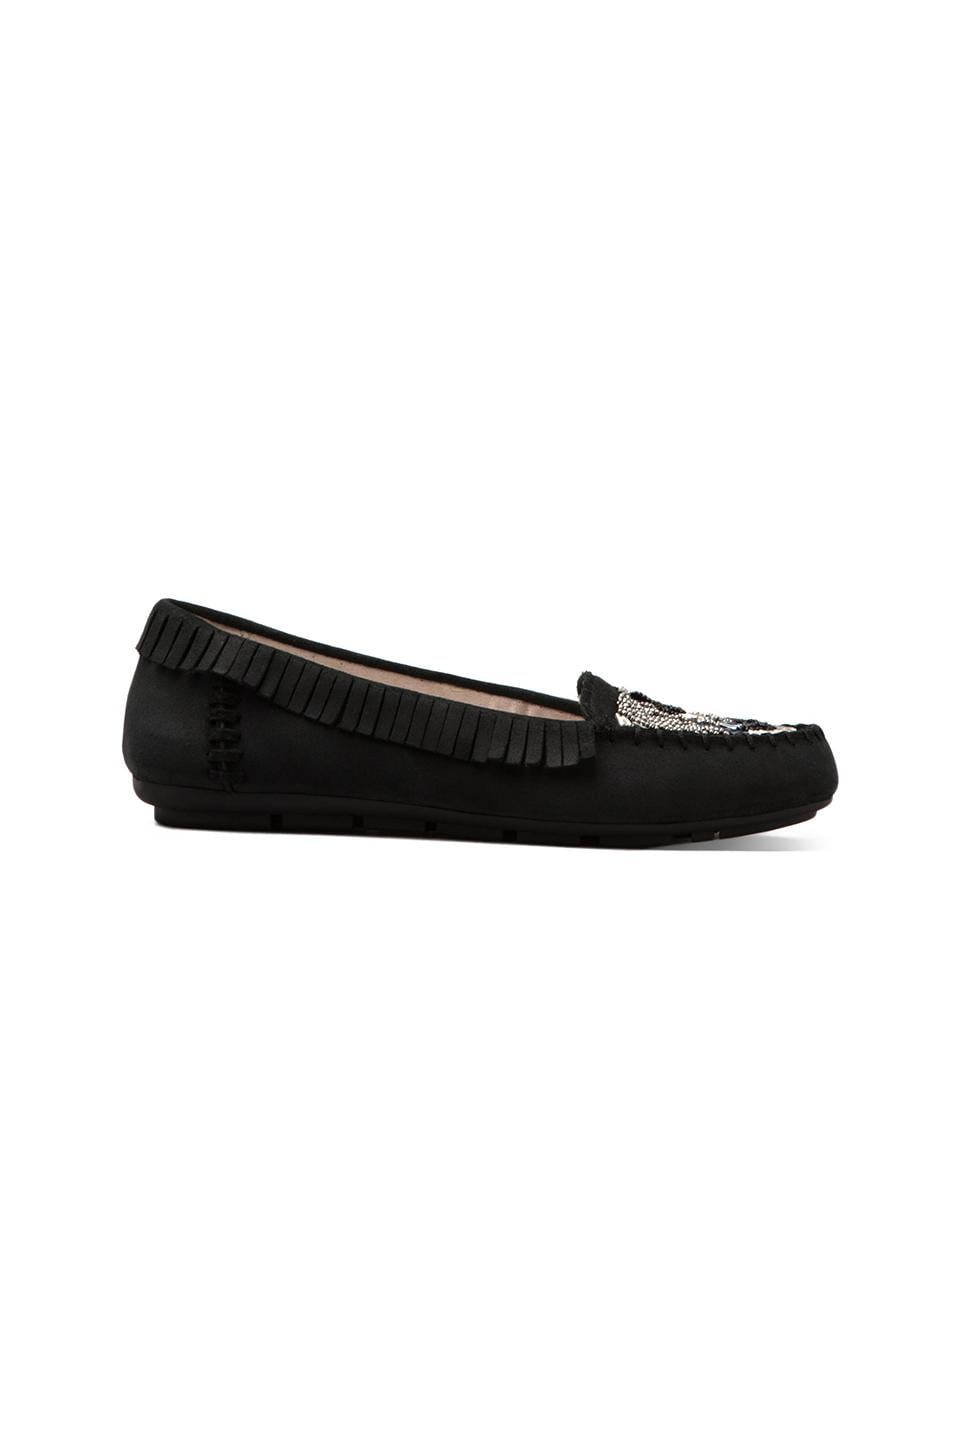 House of Harlow Marion Flat in Black